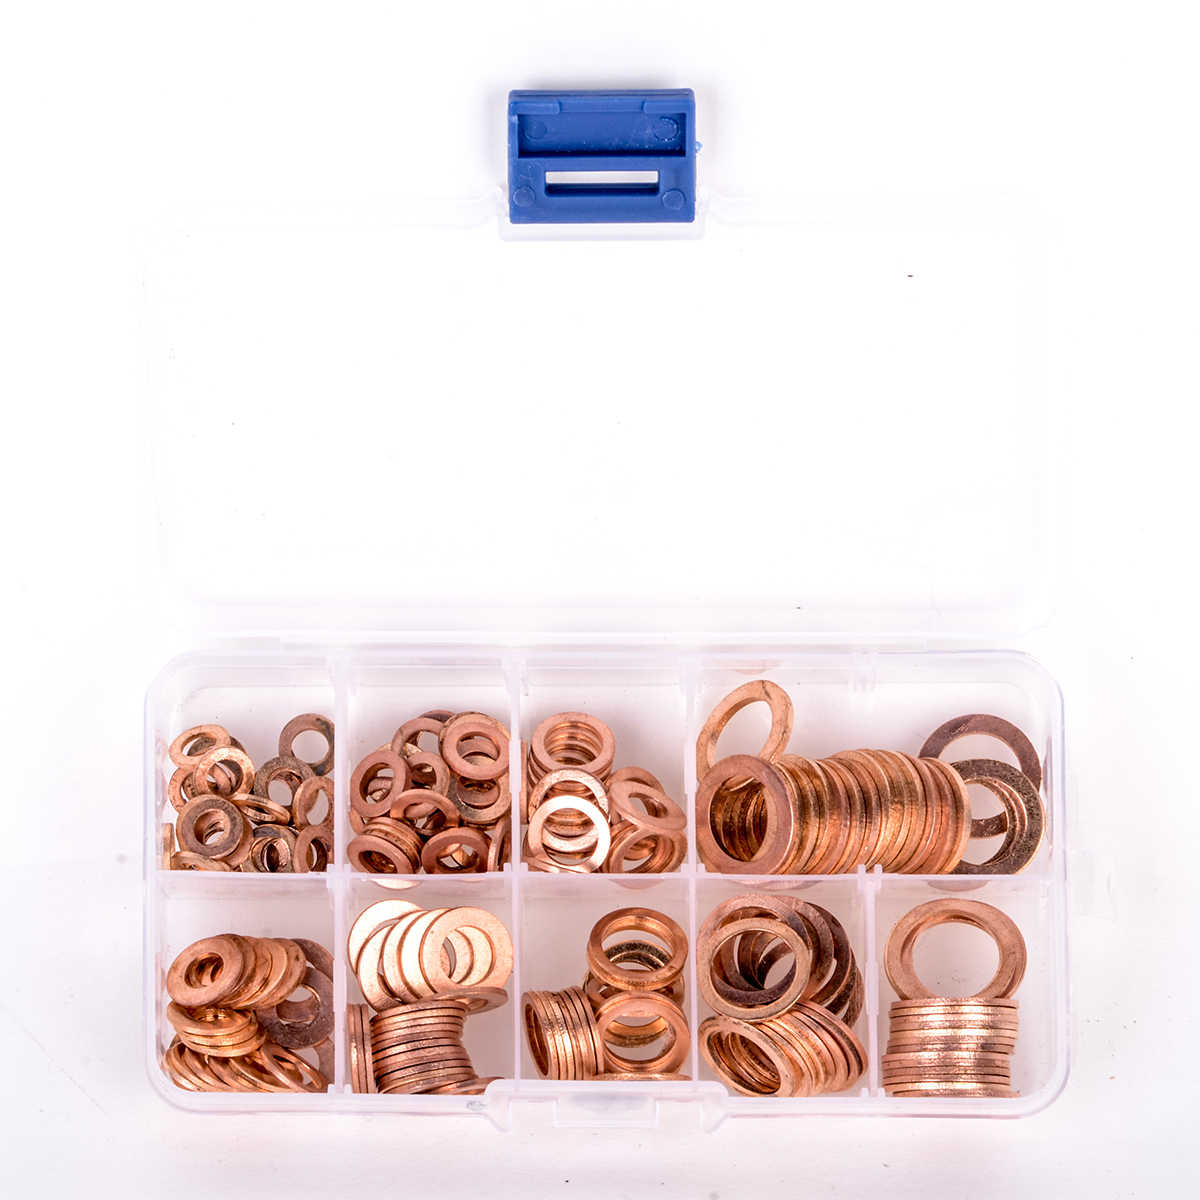 200pcs M5-M14 Professional Assorted Copper Washer Gasket Set Flat Ring Seal Assortment Kit with Box For Hardware Accessories